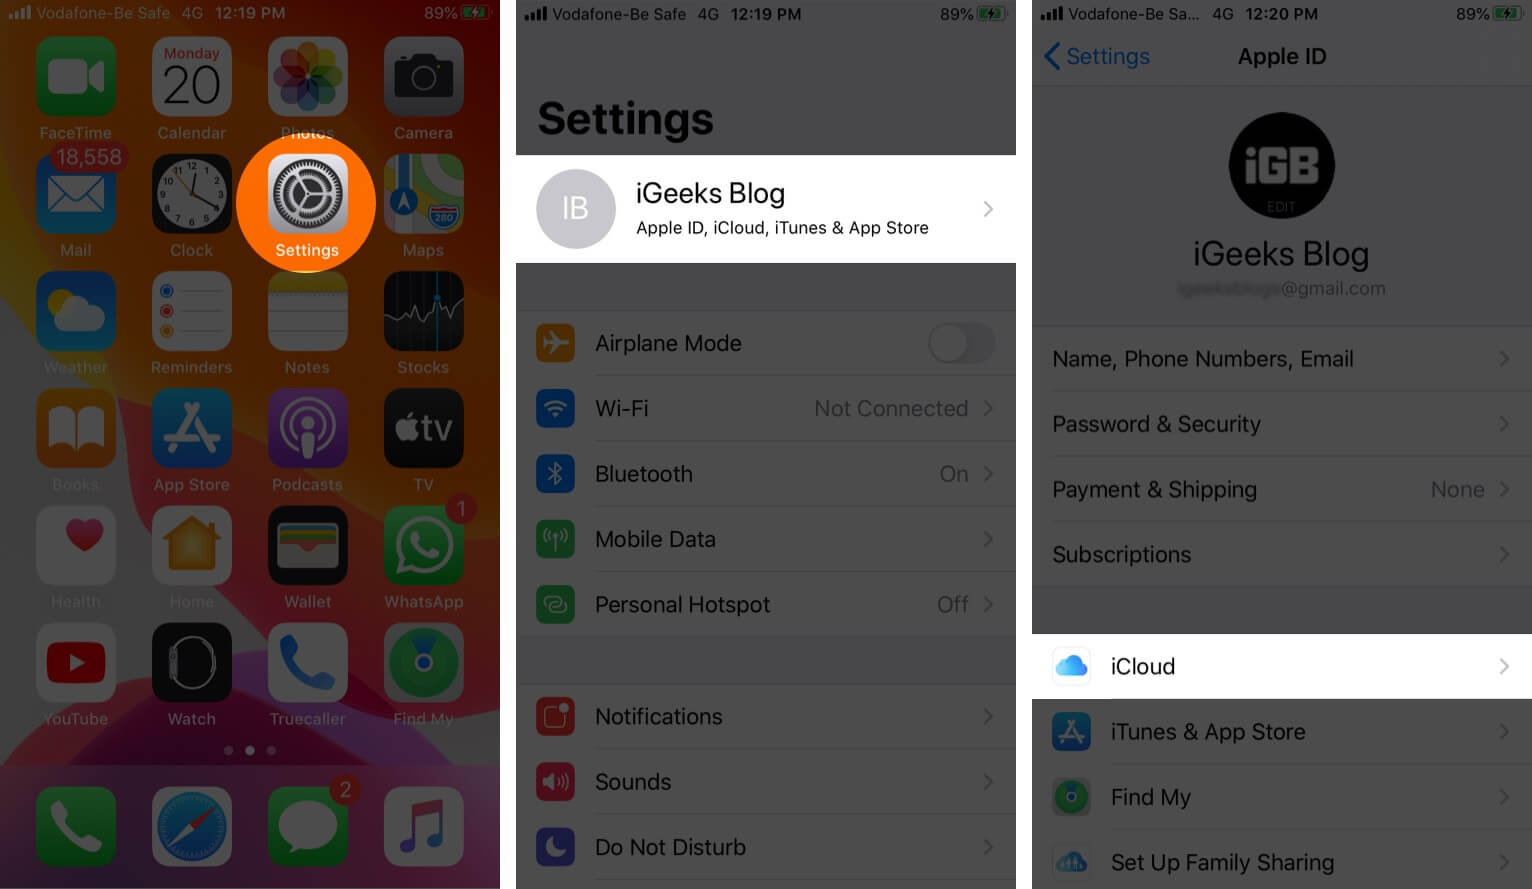 Open Settings Tap on Profile and Then Tap on iCloud on iPhone